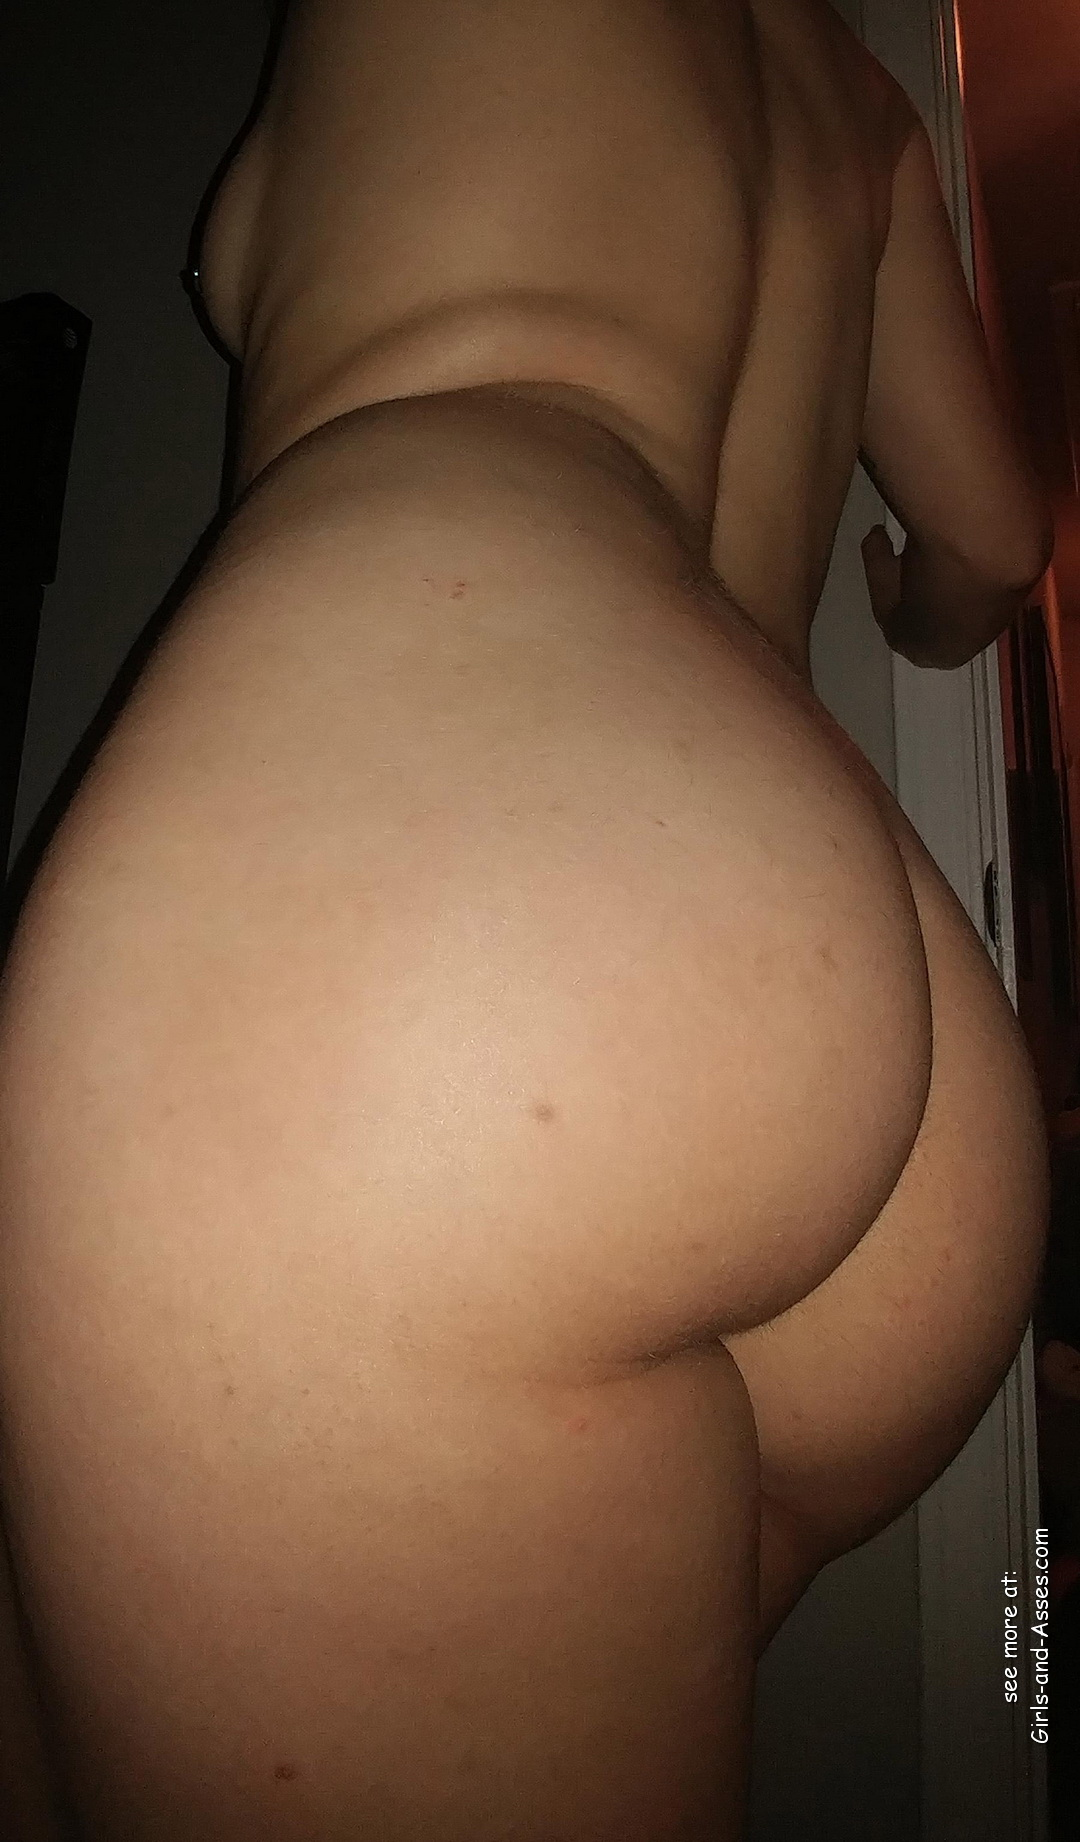 mom big booty milf picture 03129